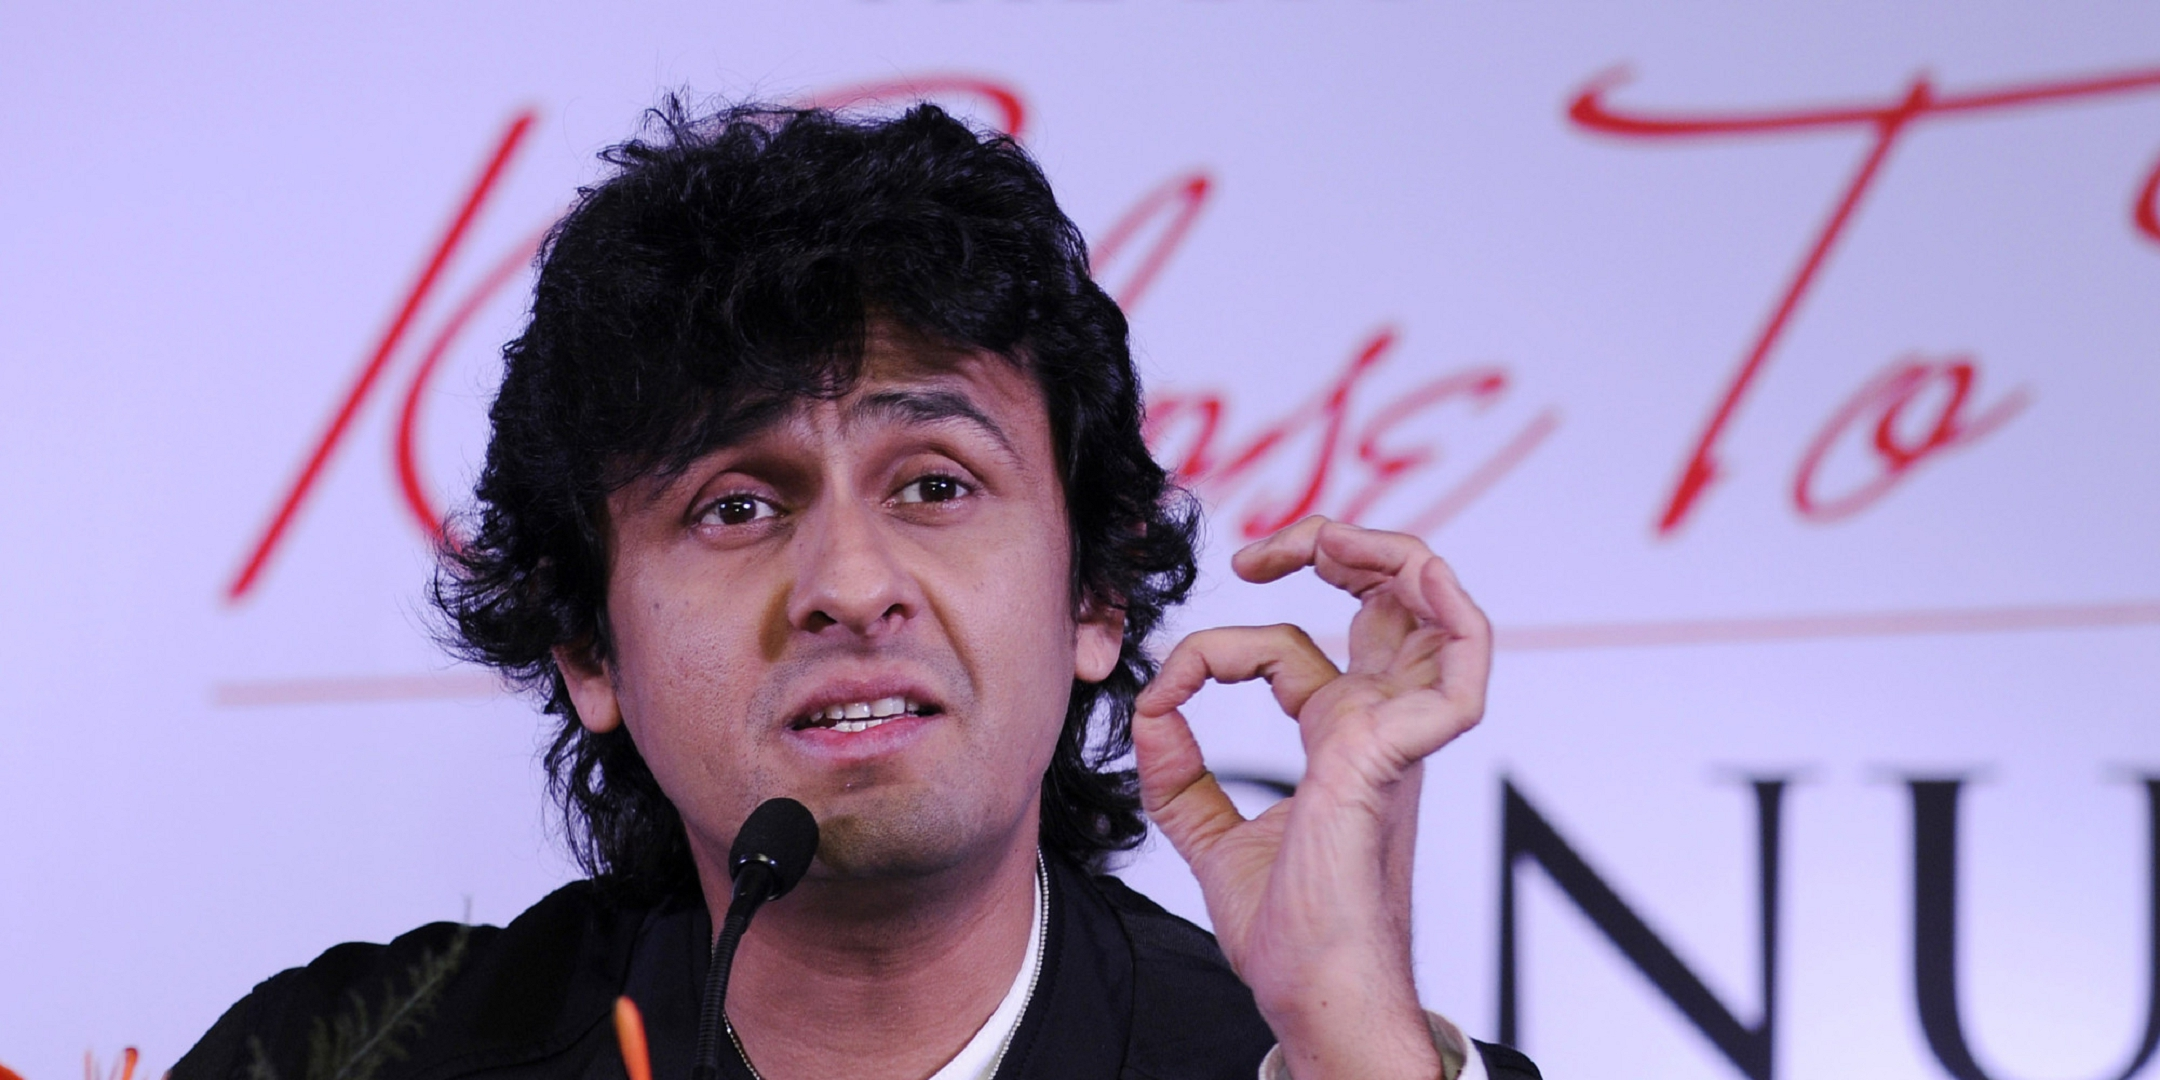 Sonu Nigam Widescreen